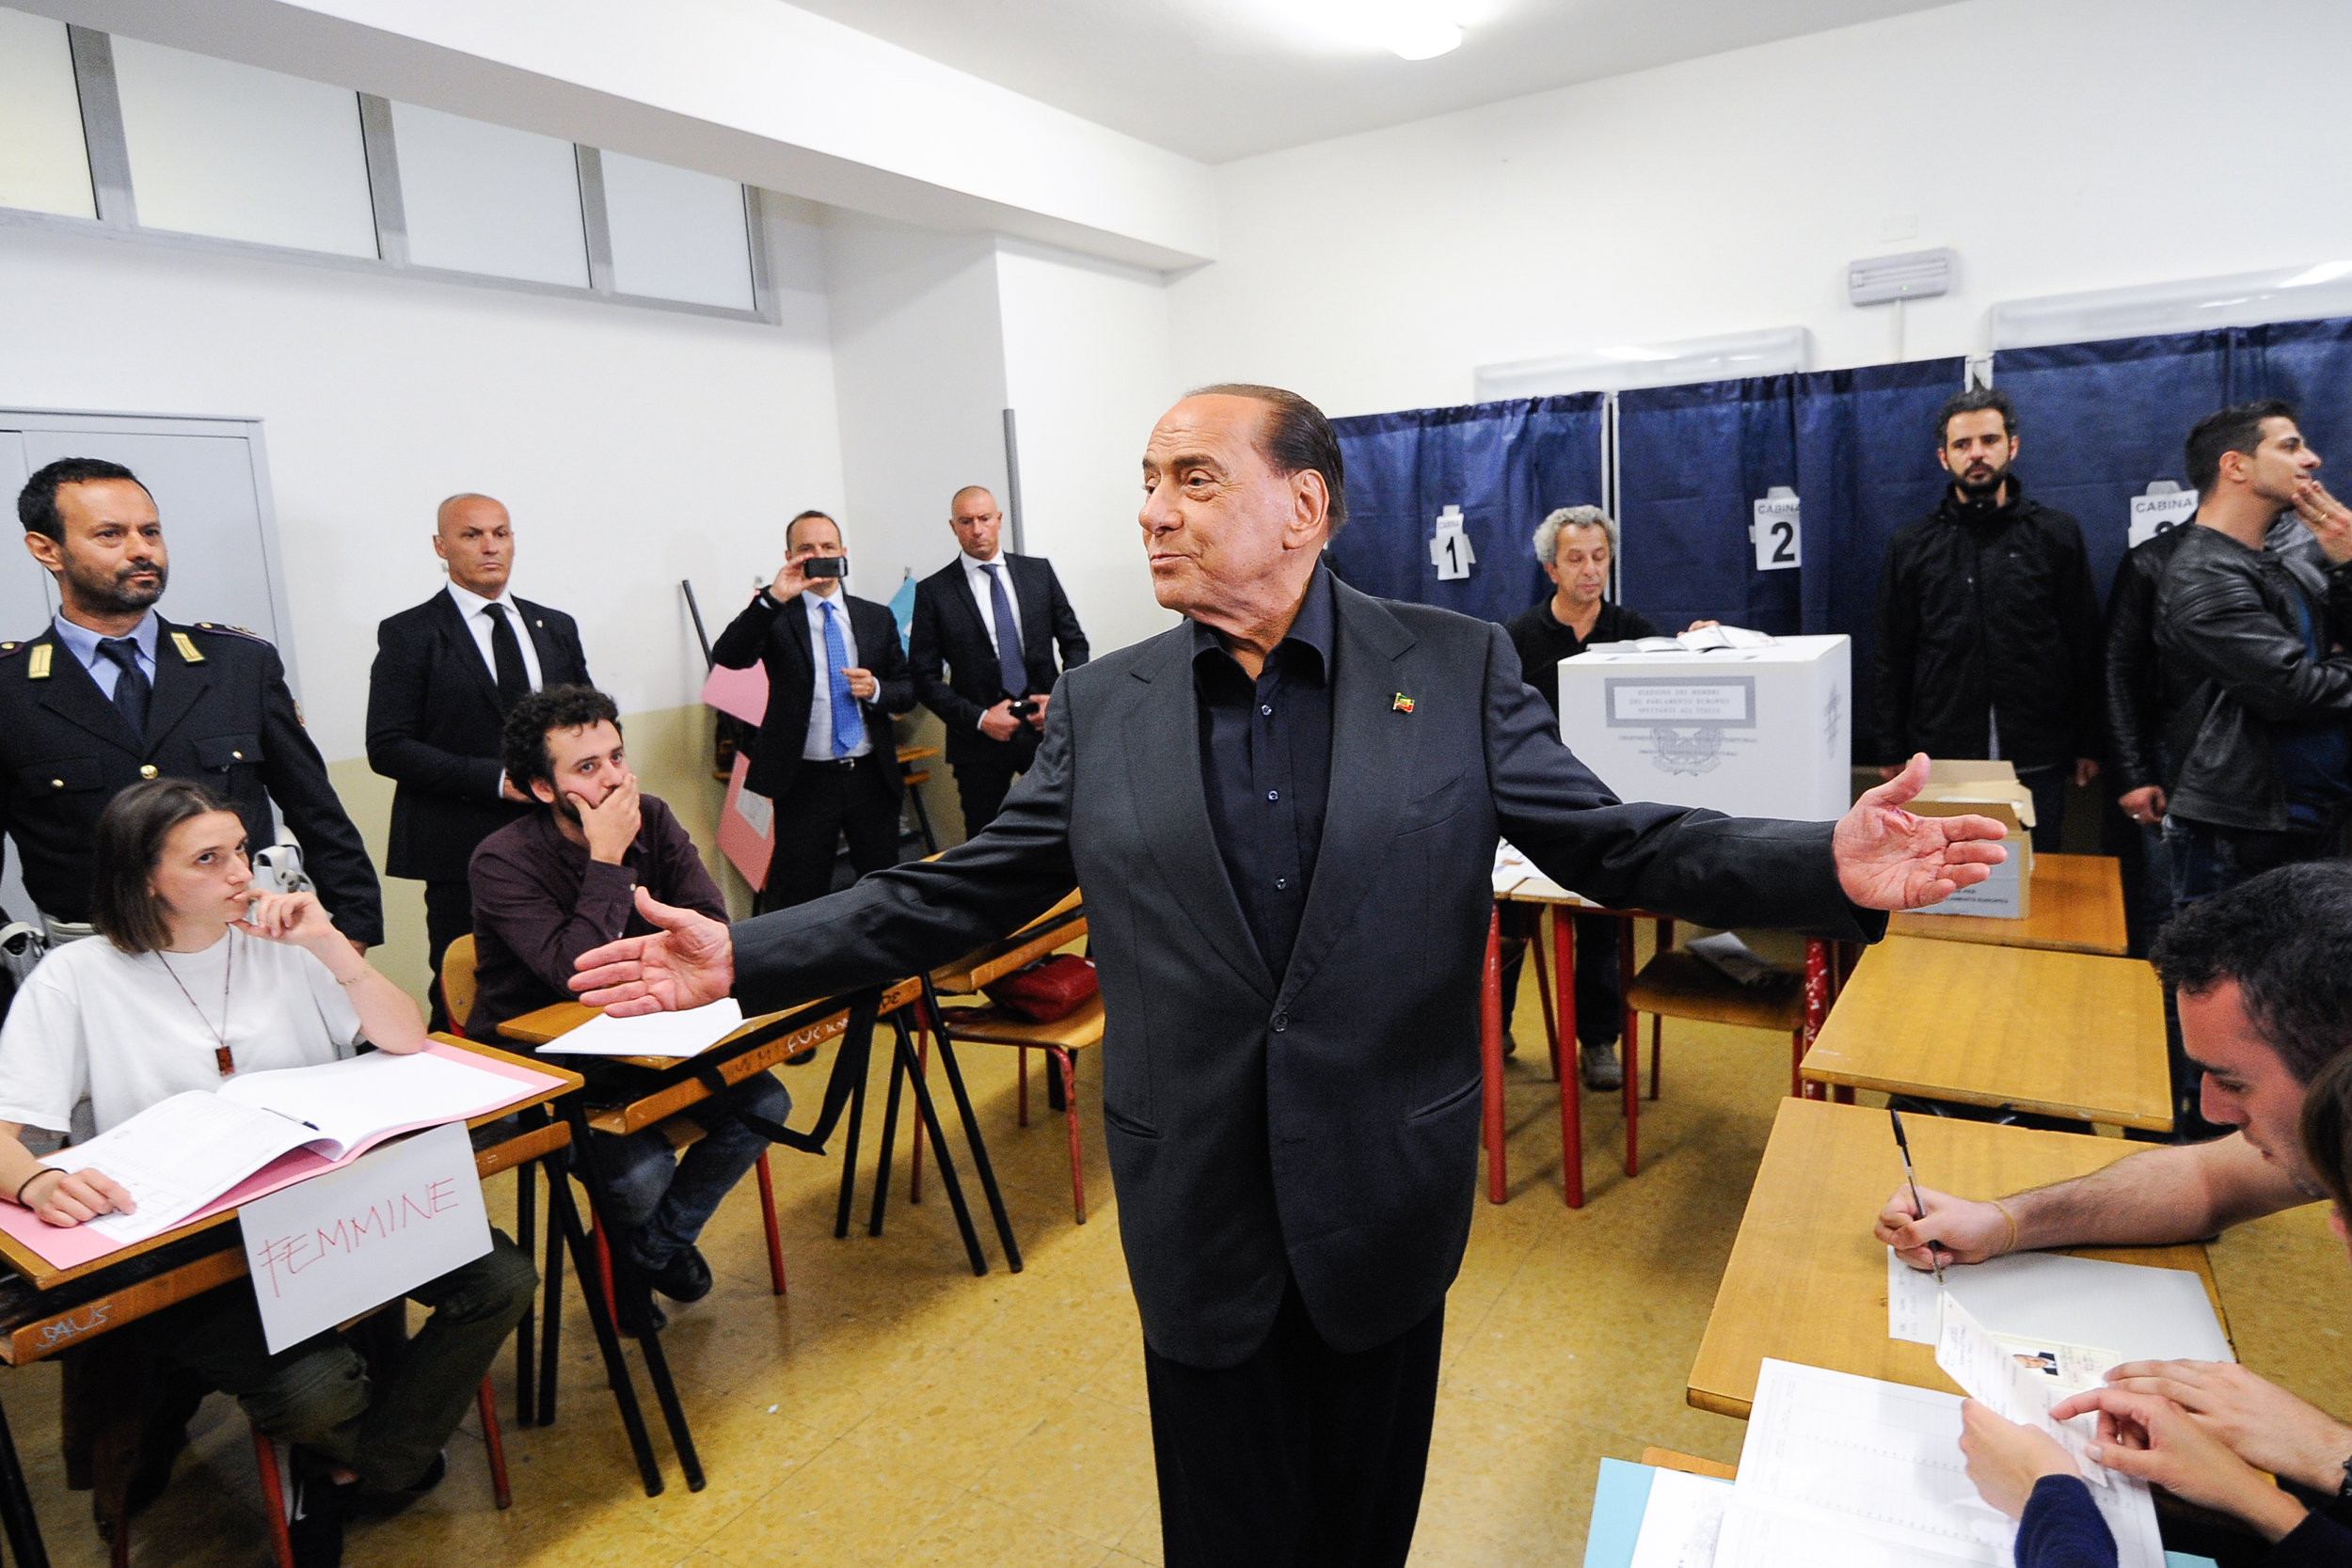 Polling station staff look on as Silvio Berlusconi, former Italian prime minister and leader of Forza Italia (Go Italy!) party, gestures near the registration tables during the European Parliament election in Milan, Italy May 26, 2019.